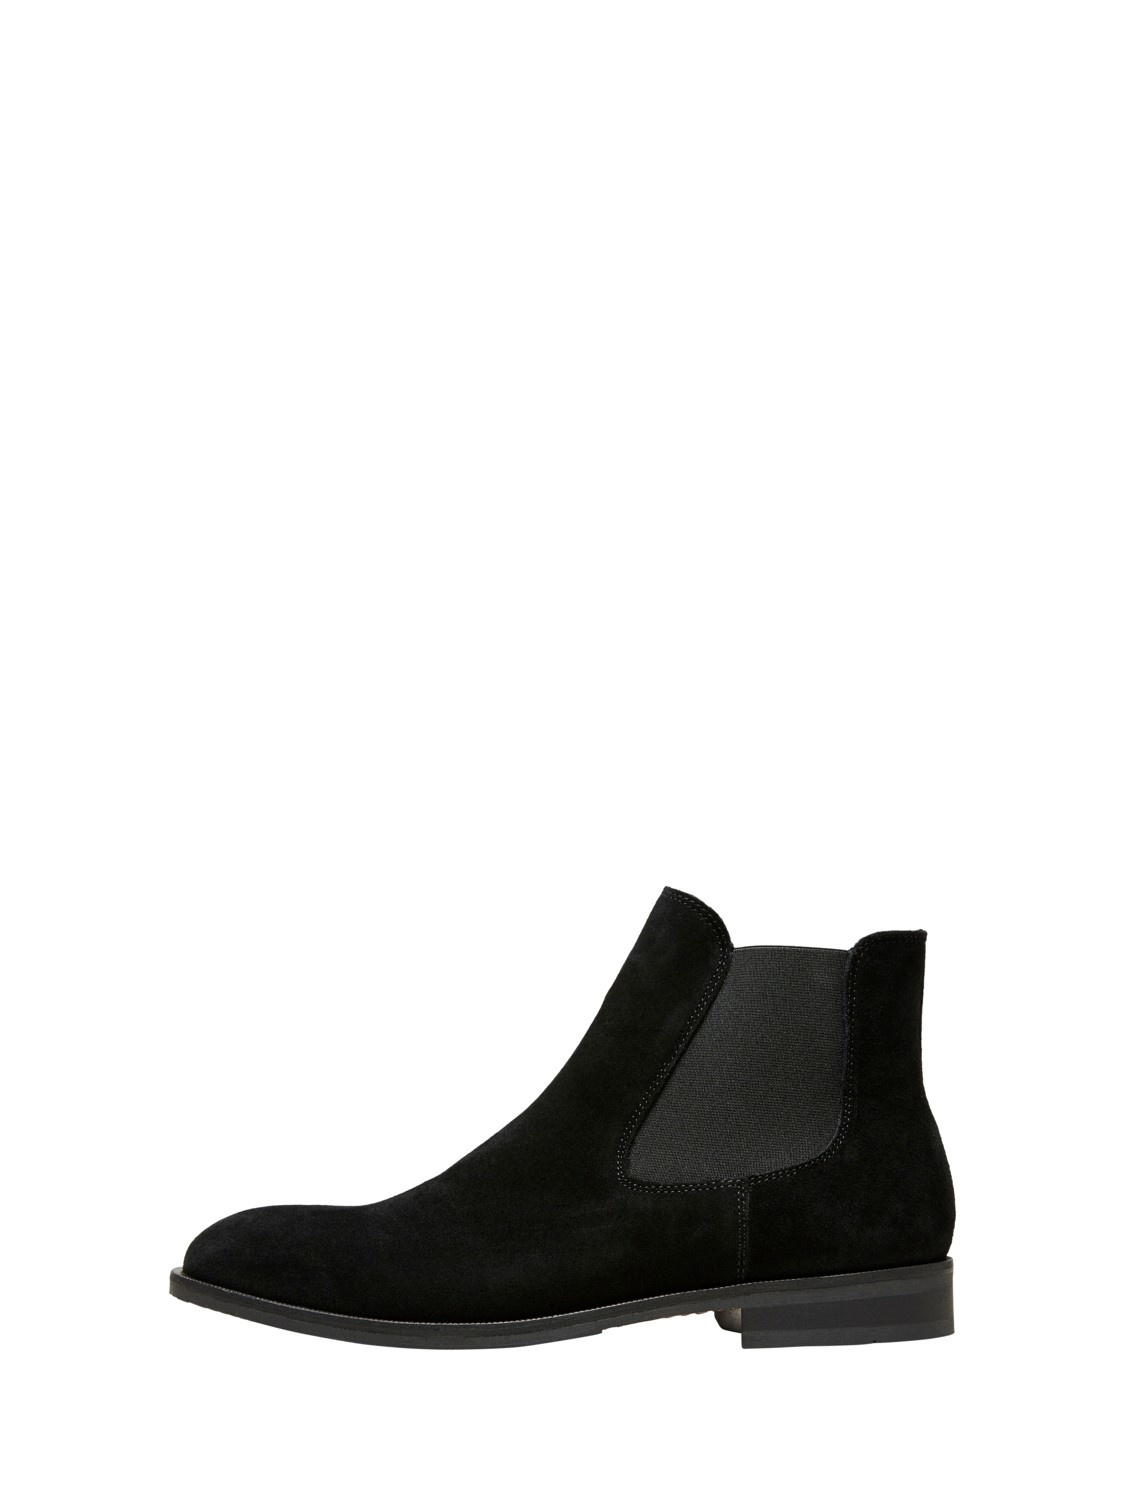 Selected Selected Chelsea Boot Noos